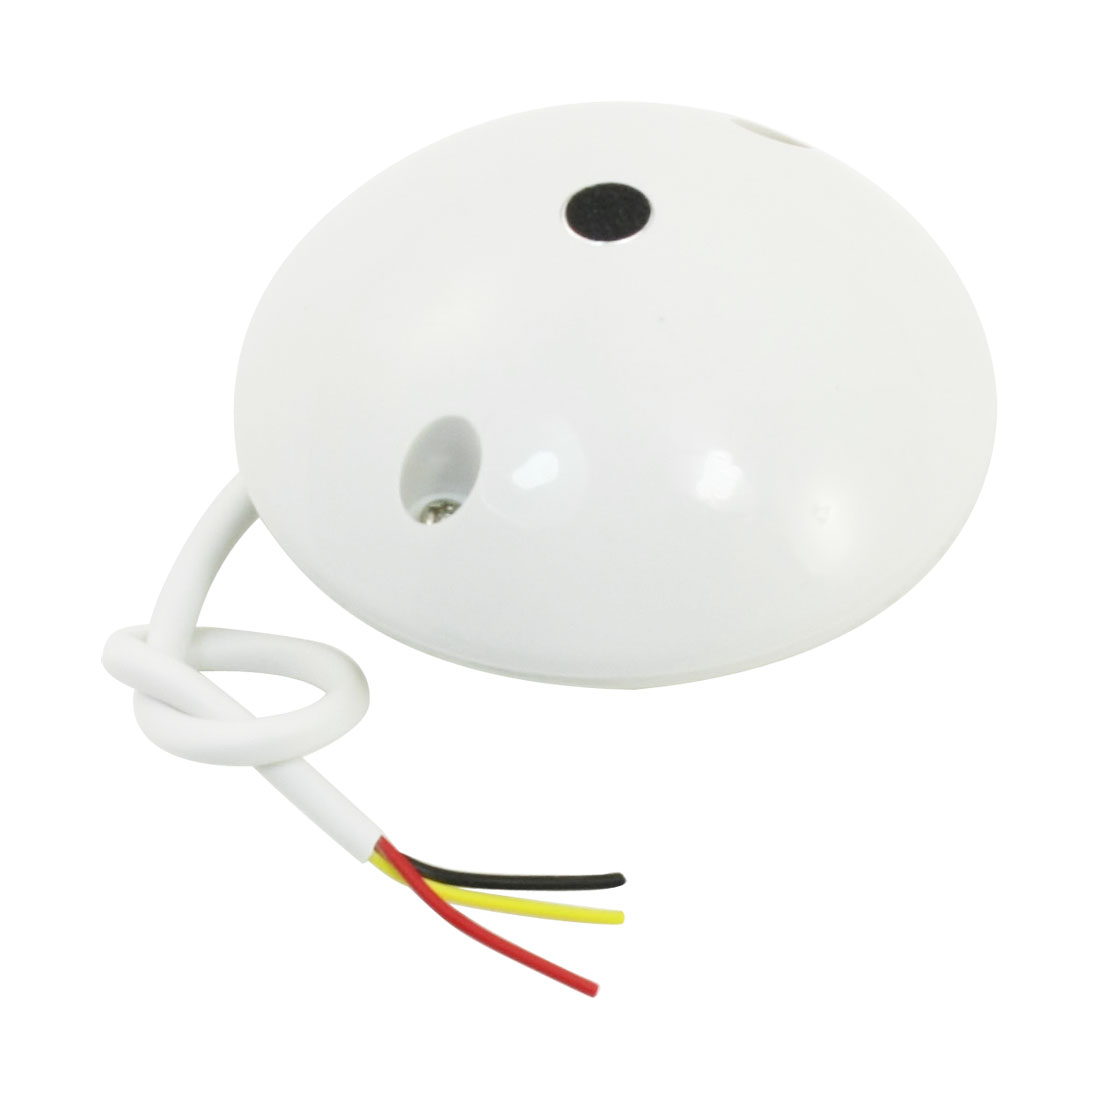 DC 12V 3.5mA Mushroom Shape Pick Up Sound Monitor for CCTV System